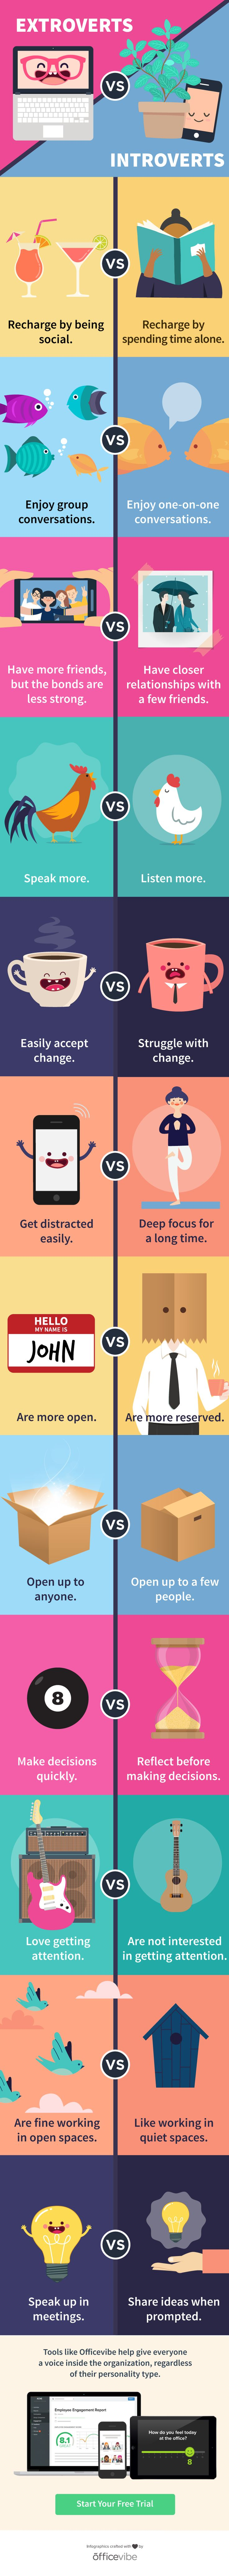 The Key Differences Between Introverts And Extroverts